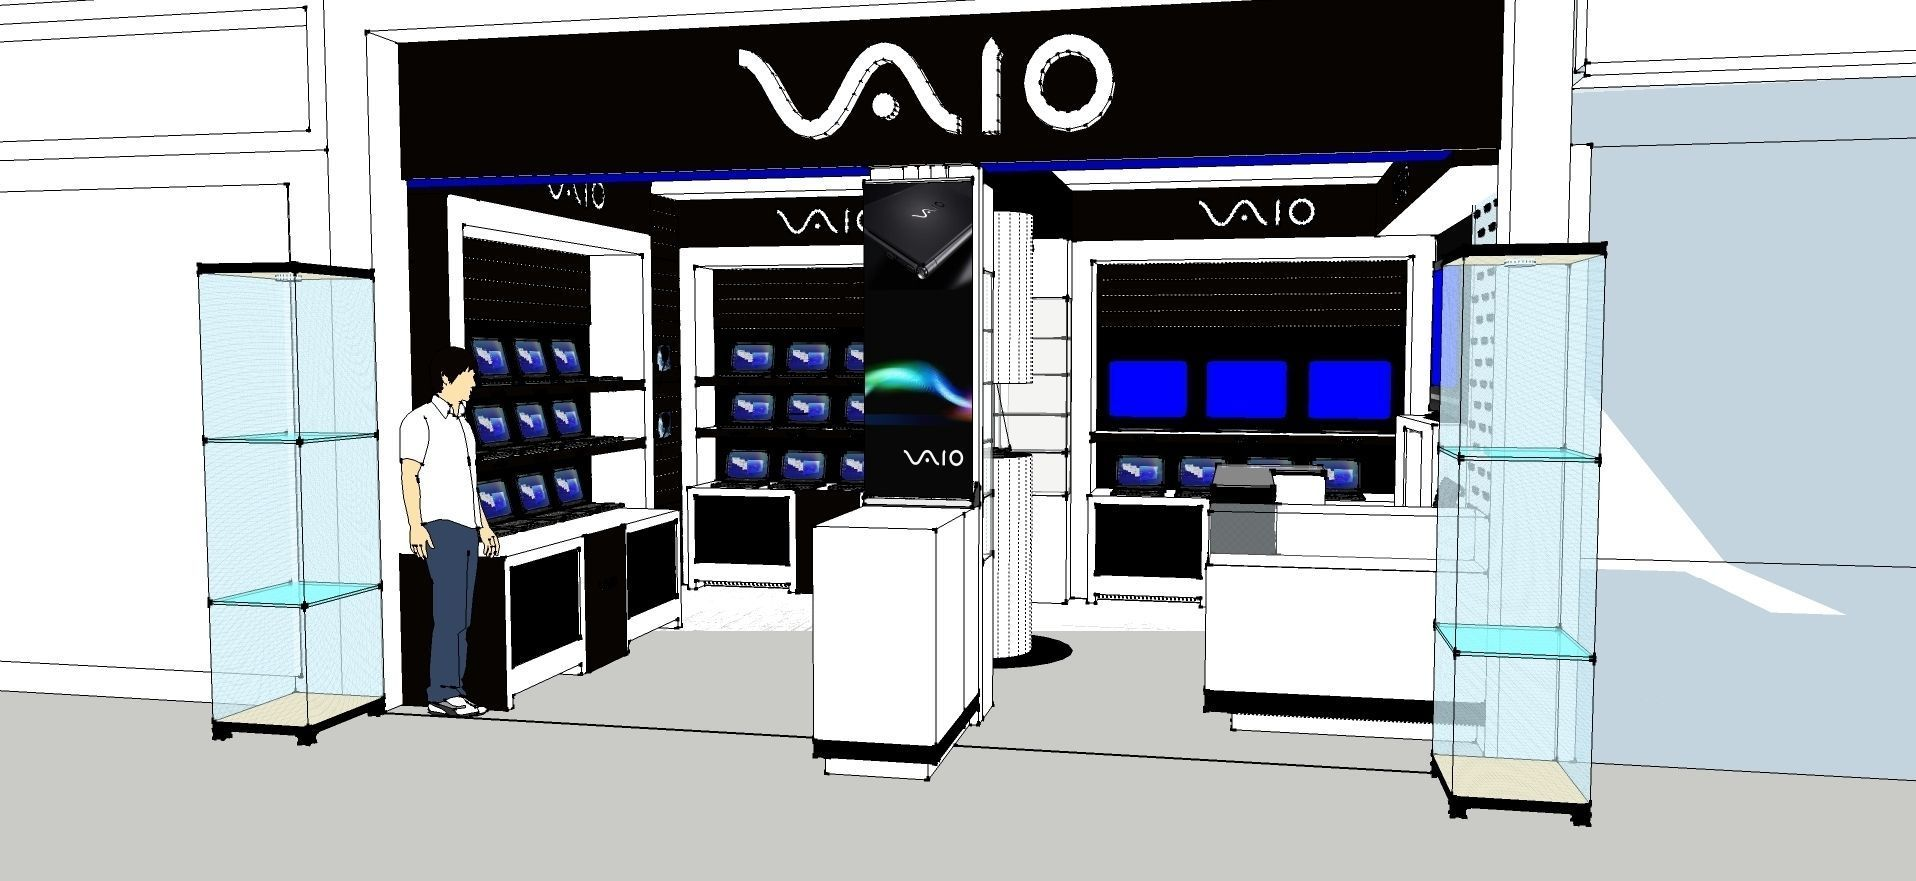 Exhibition Stand Sketchup : The exhibition portable t airframe shop s d model skp